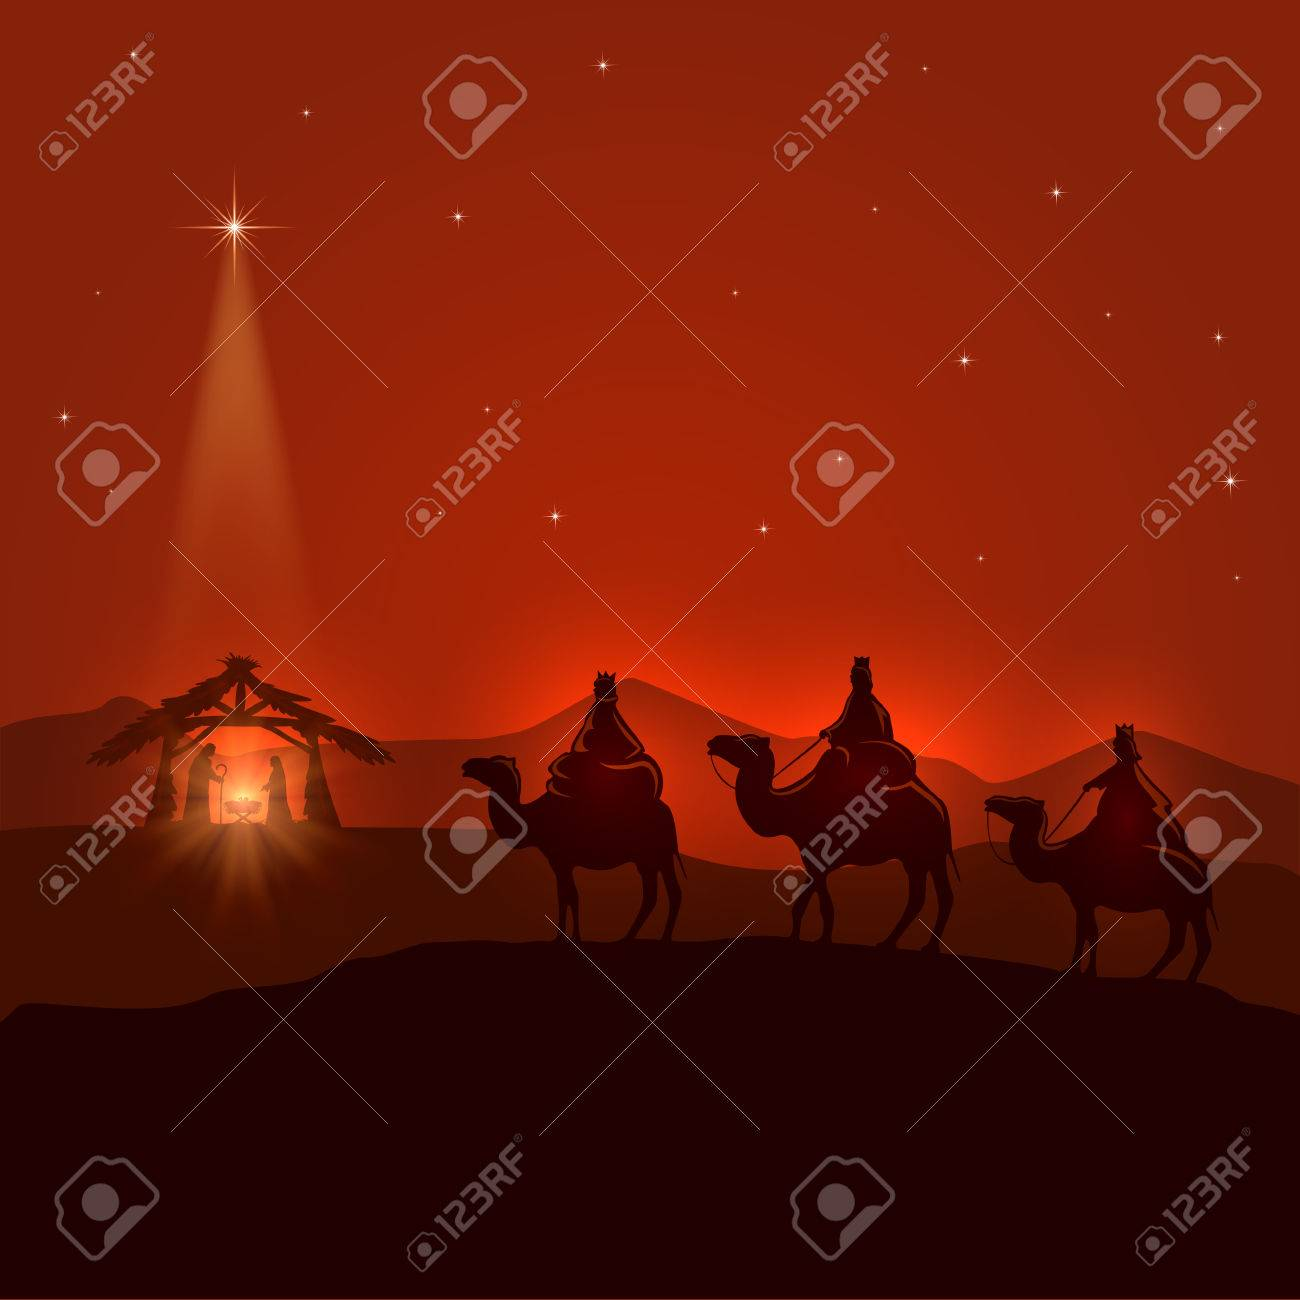 Night background with Christian Christmas scene, three wise men, birth of Jesus and shining star, illustration. - 48256906